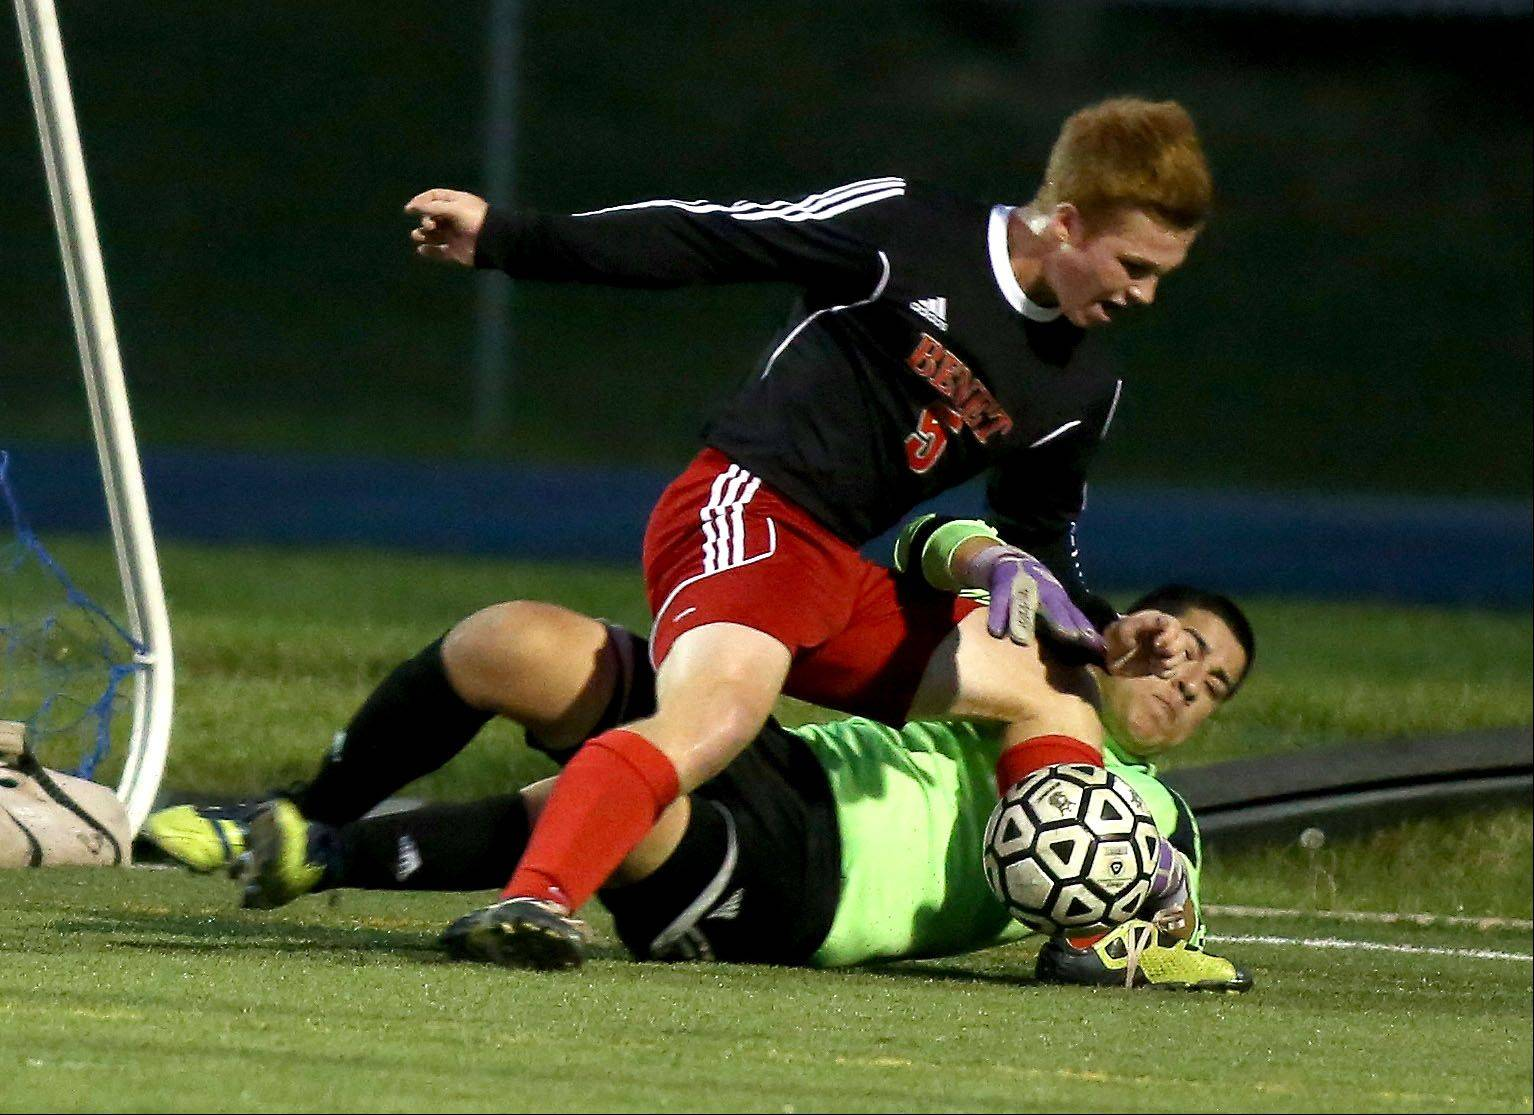 Benet Academy's Paddy Lawler collides with West Chicago goalkeeper Paolino Mansera as he makes a save in boys soccer action on Monday.